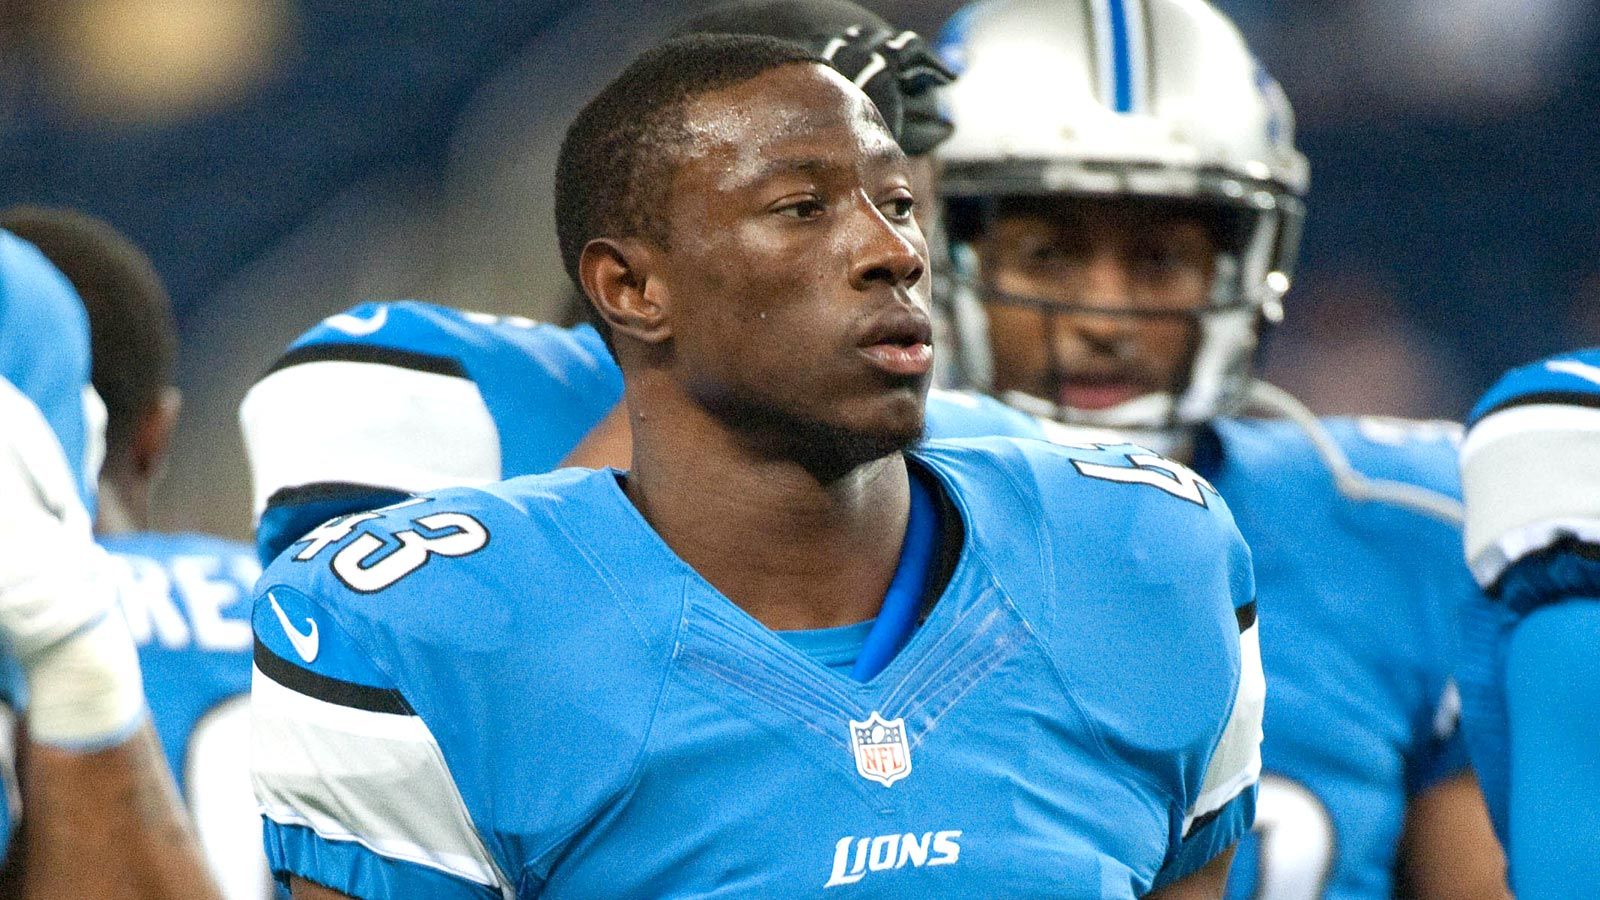 Lions cornerback Nevin Lawson says NFL told team that 66-yard penalty was a mistake